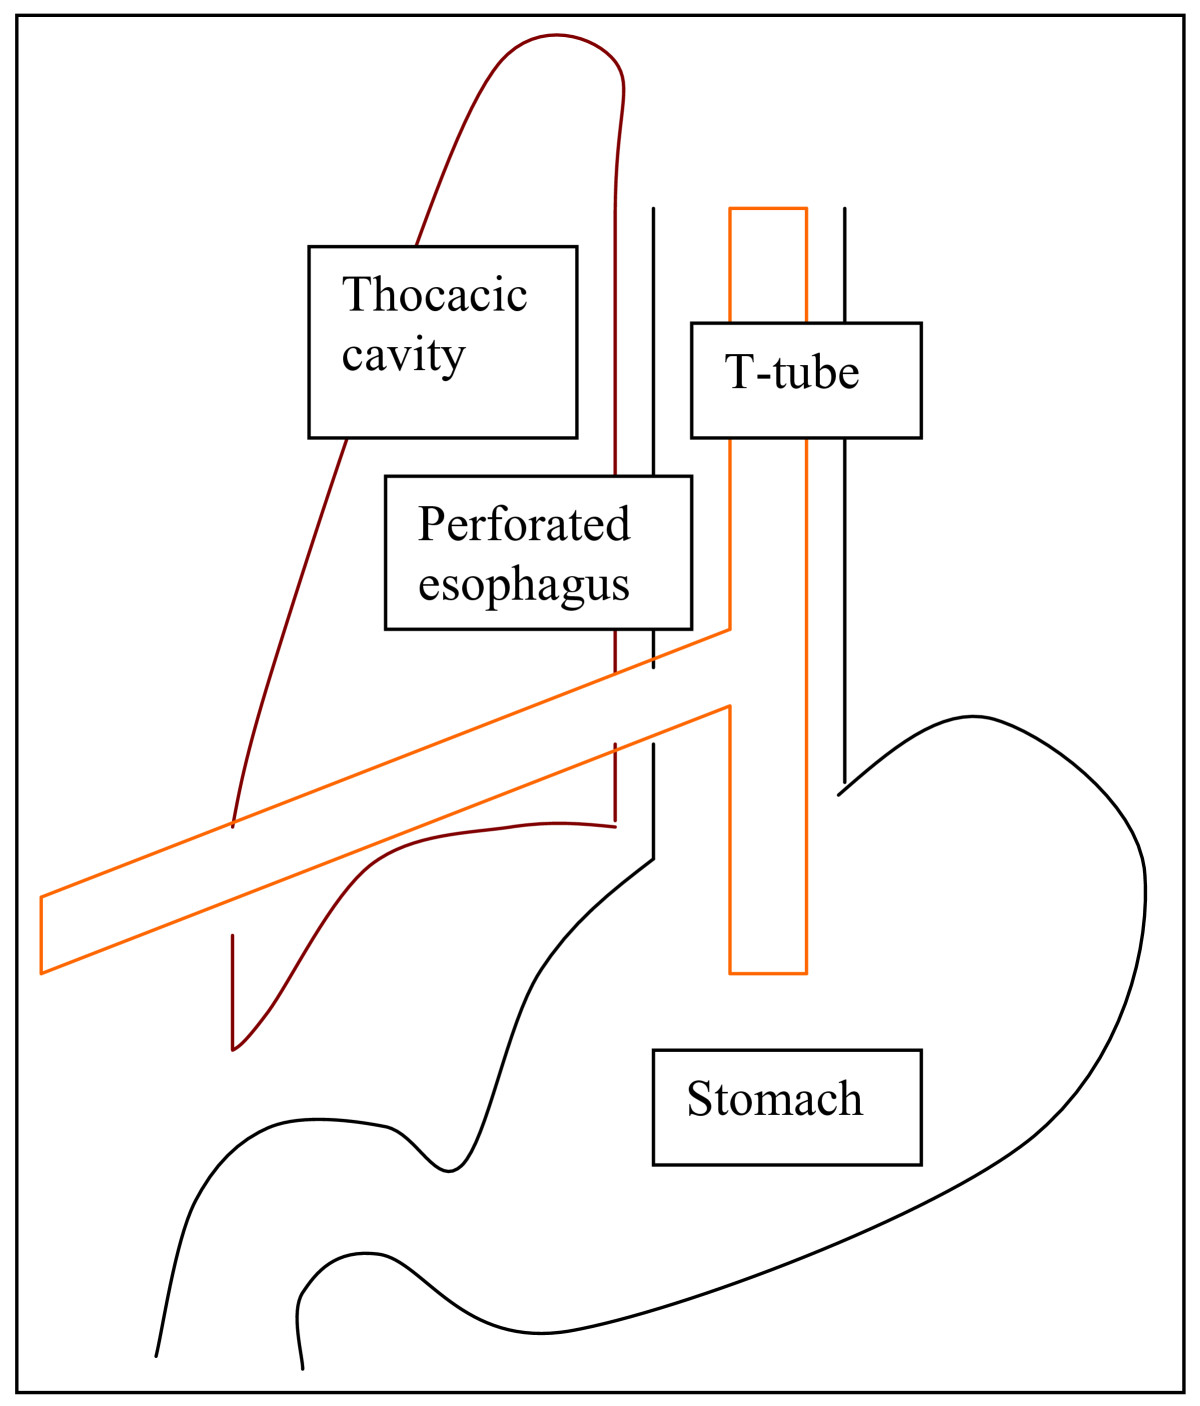 https://static-content.springer.com/image/art%3A10.1186%2F1754-9493-3-19/MediaObjects/13037_2009_Article_60_Fig4_HTML.jpg